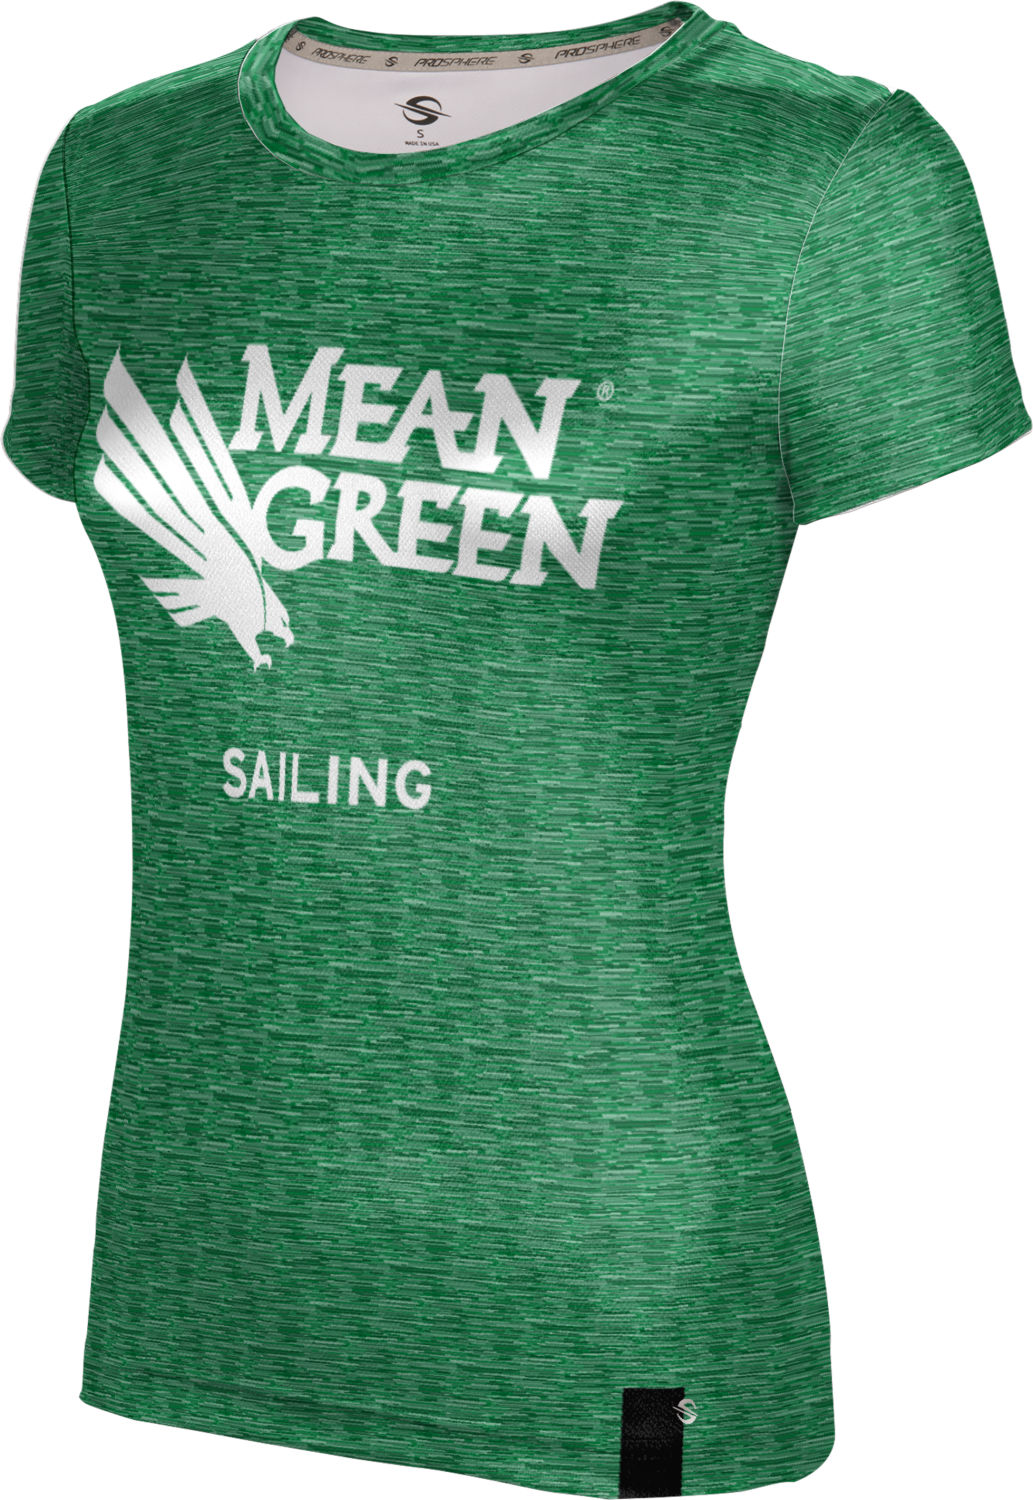 ProSphere Sailing Women's Short Sleeve Tee